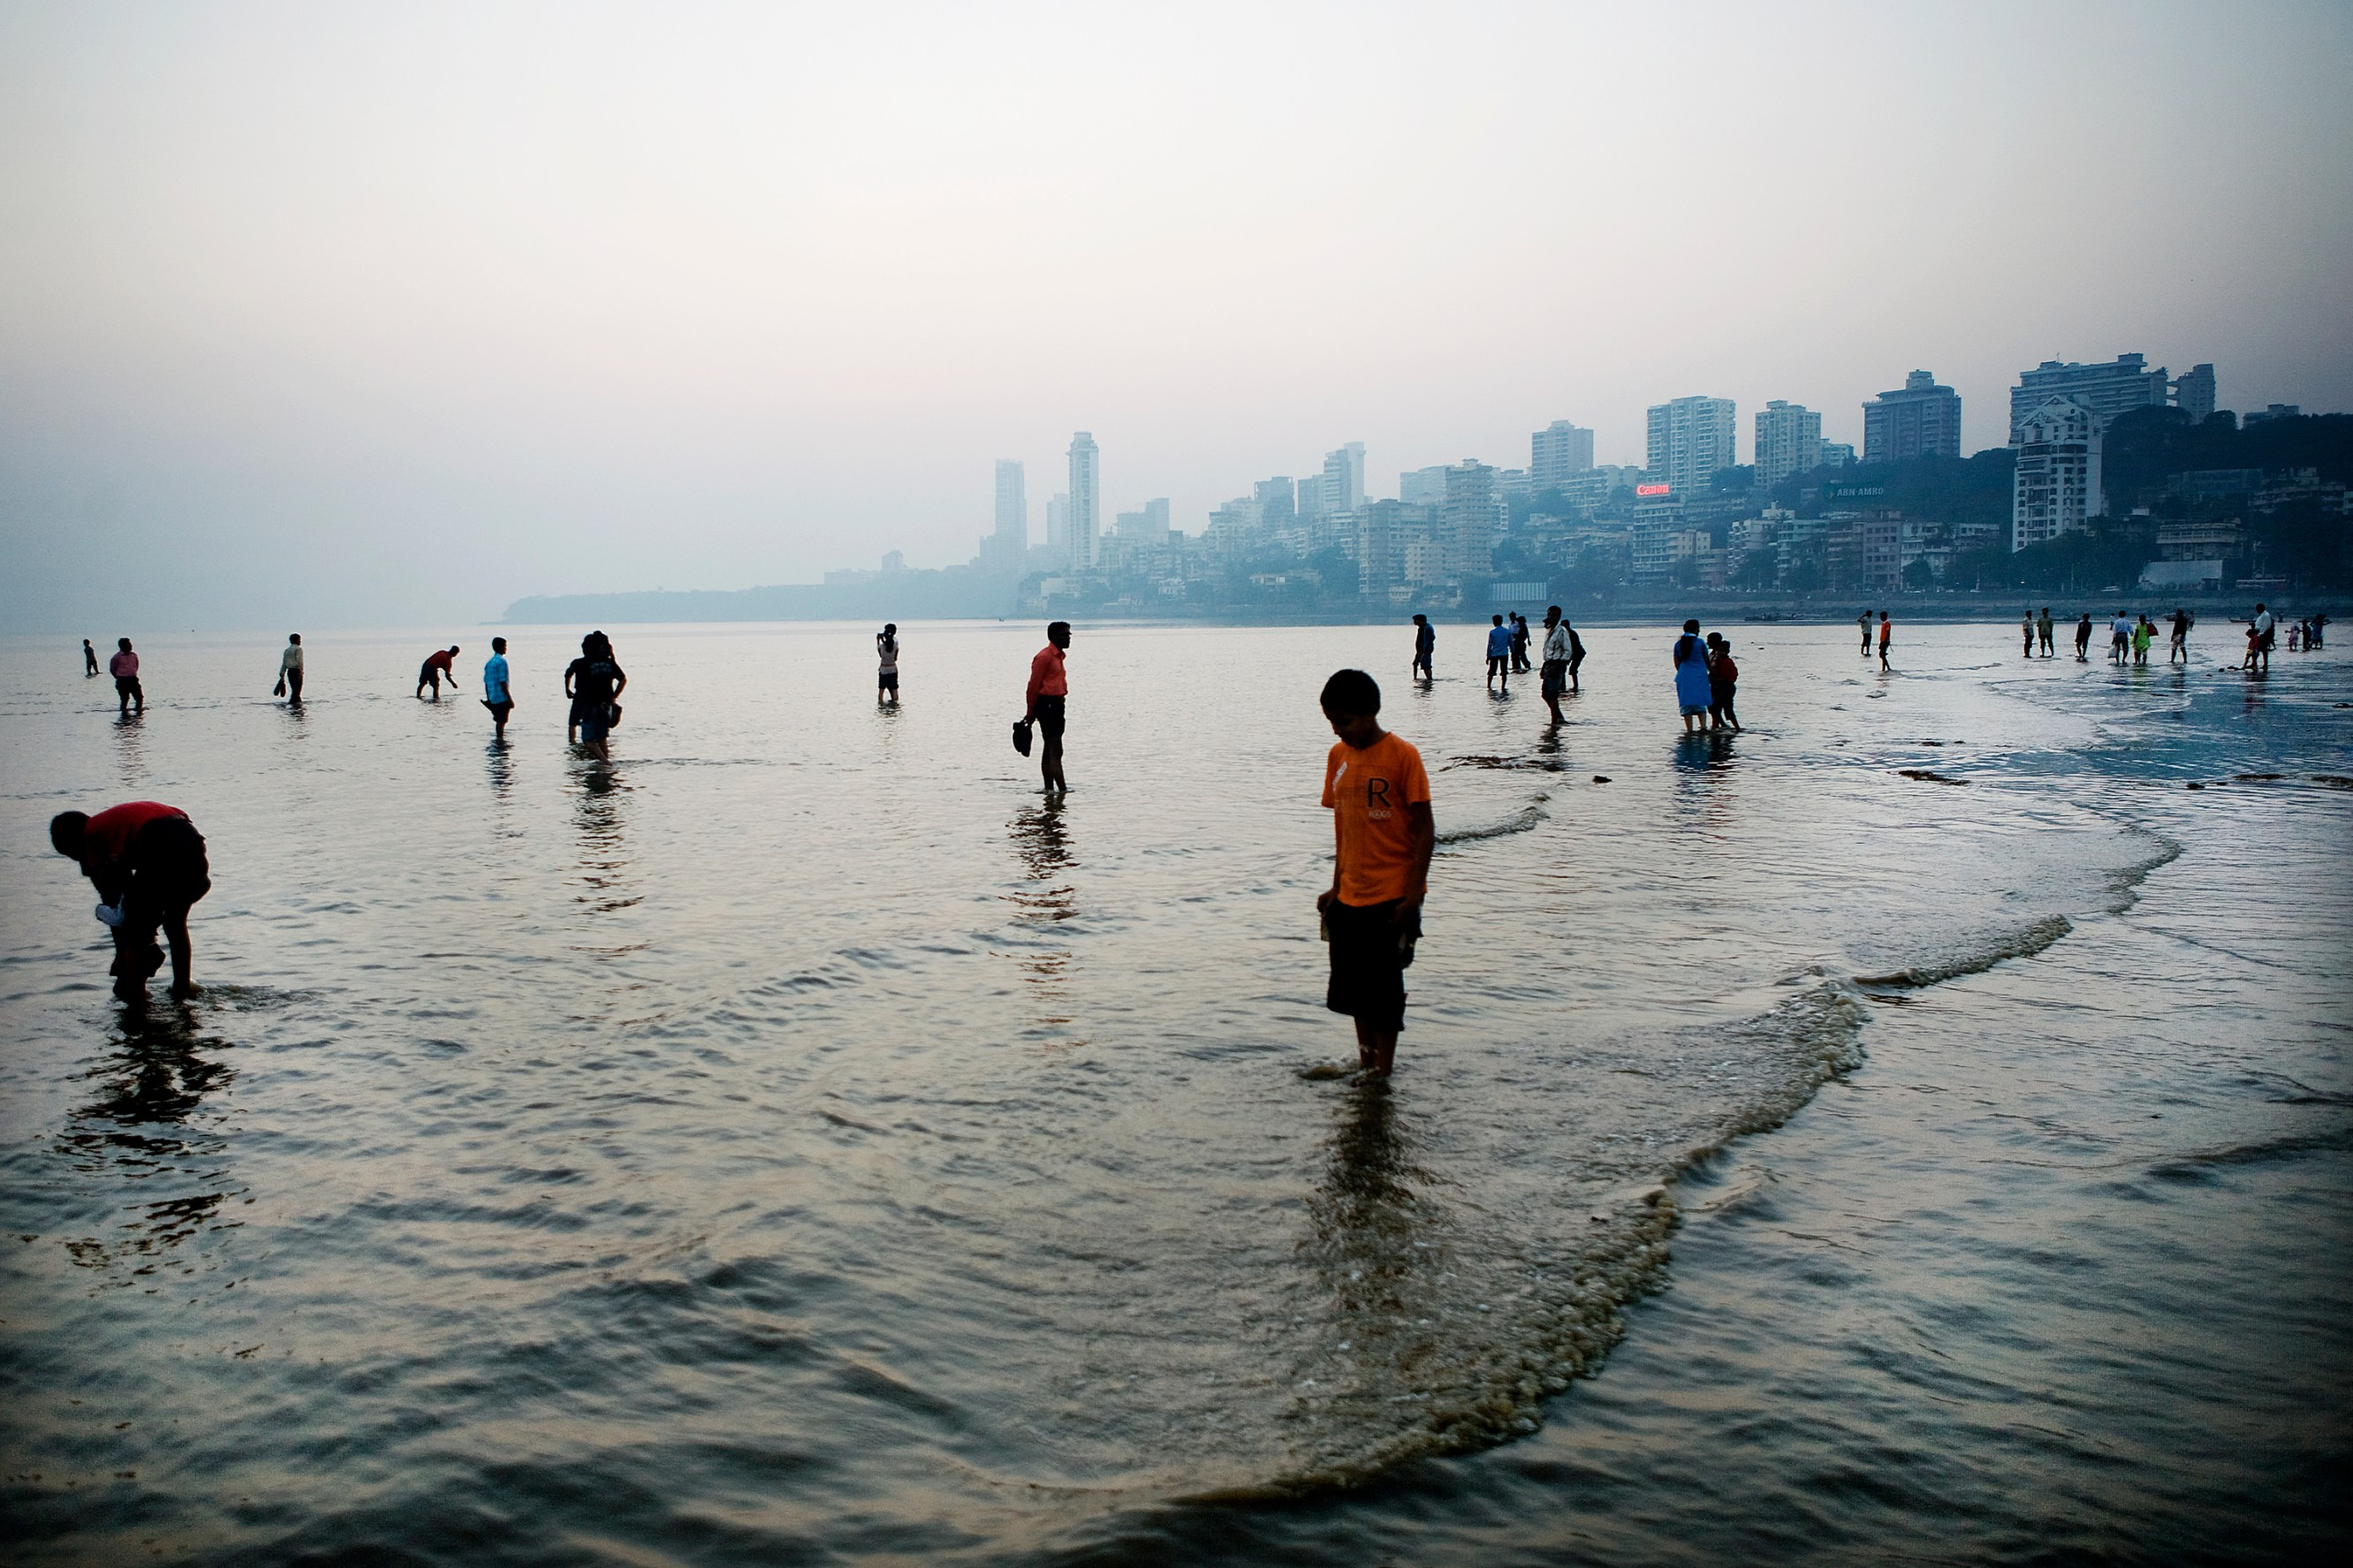 To know Bombay is to know modern India. Full of ambitions and an emblem of globalization you can reach out and touch, a giant city where change is pouring in on a daily basis. To migrants from India's poor states, the metropolis is known as Mayanagri, the City of Dreams.